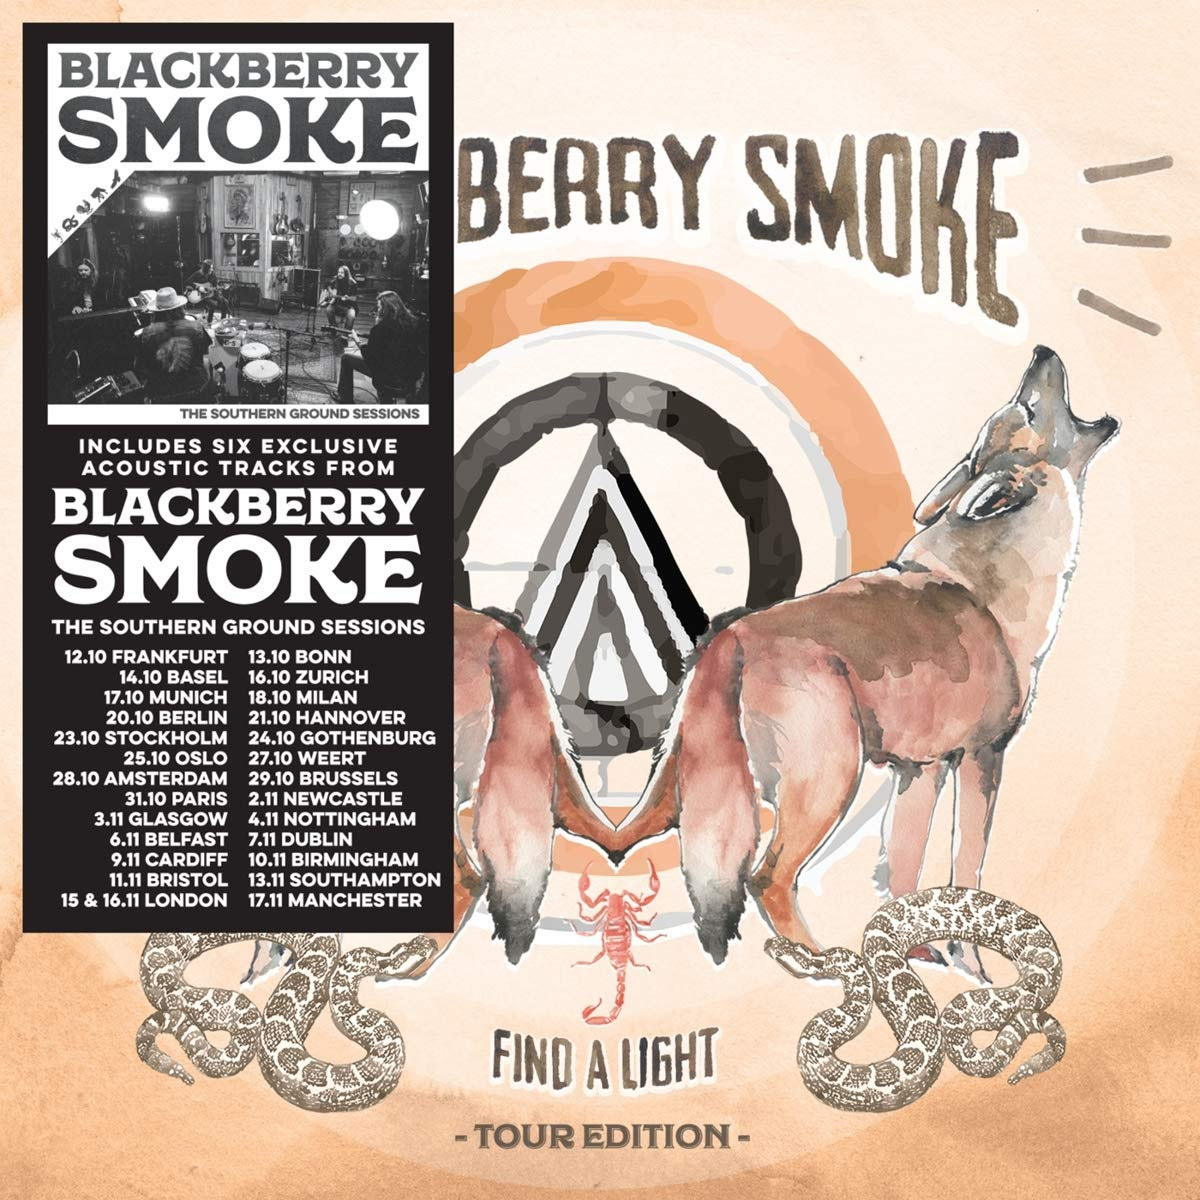 Blackberry Smoke - Find A Light: Tour Edition (Bonus Track) [Import]